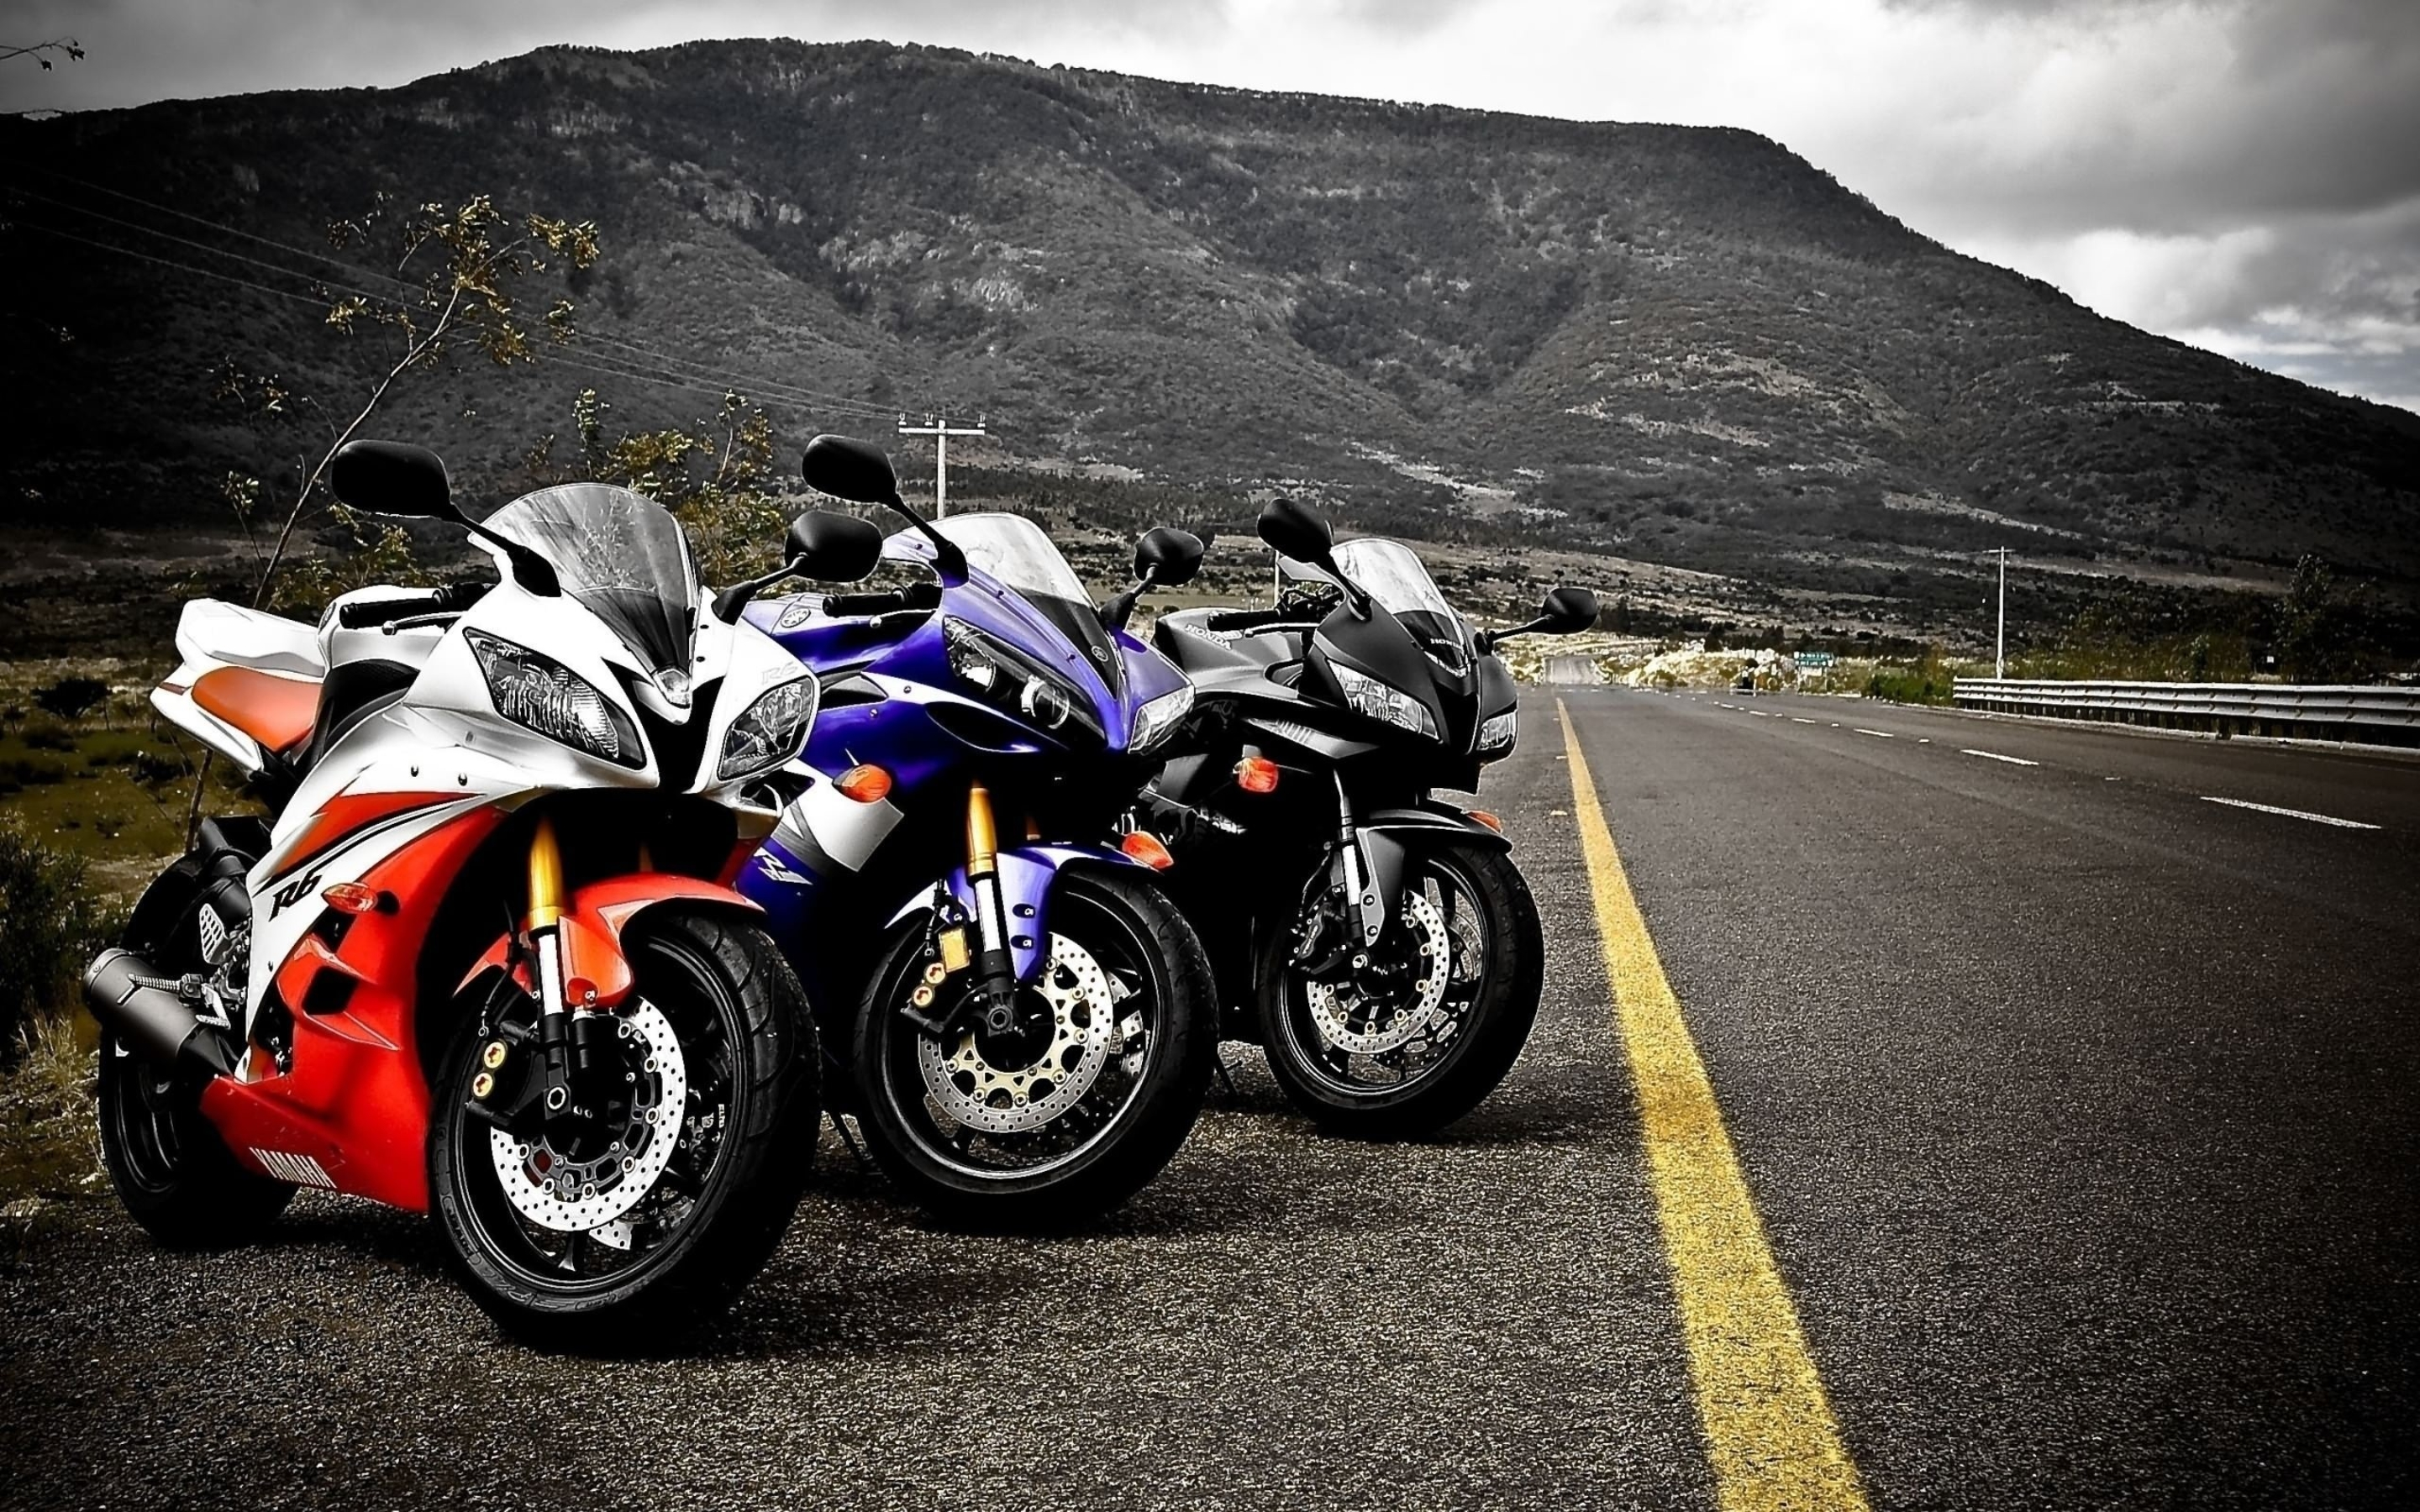 Image: Yamaha R1, motorcycles, wheels, lights, mirrors, highway, road, marking, mountains